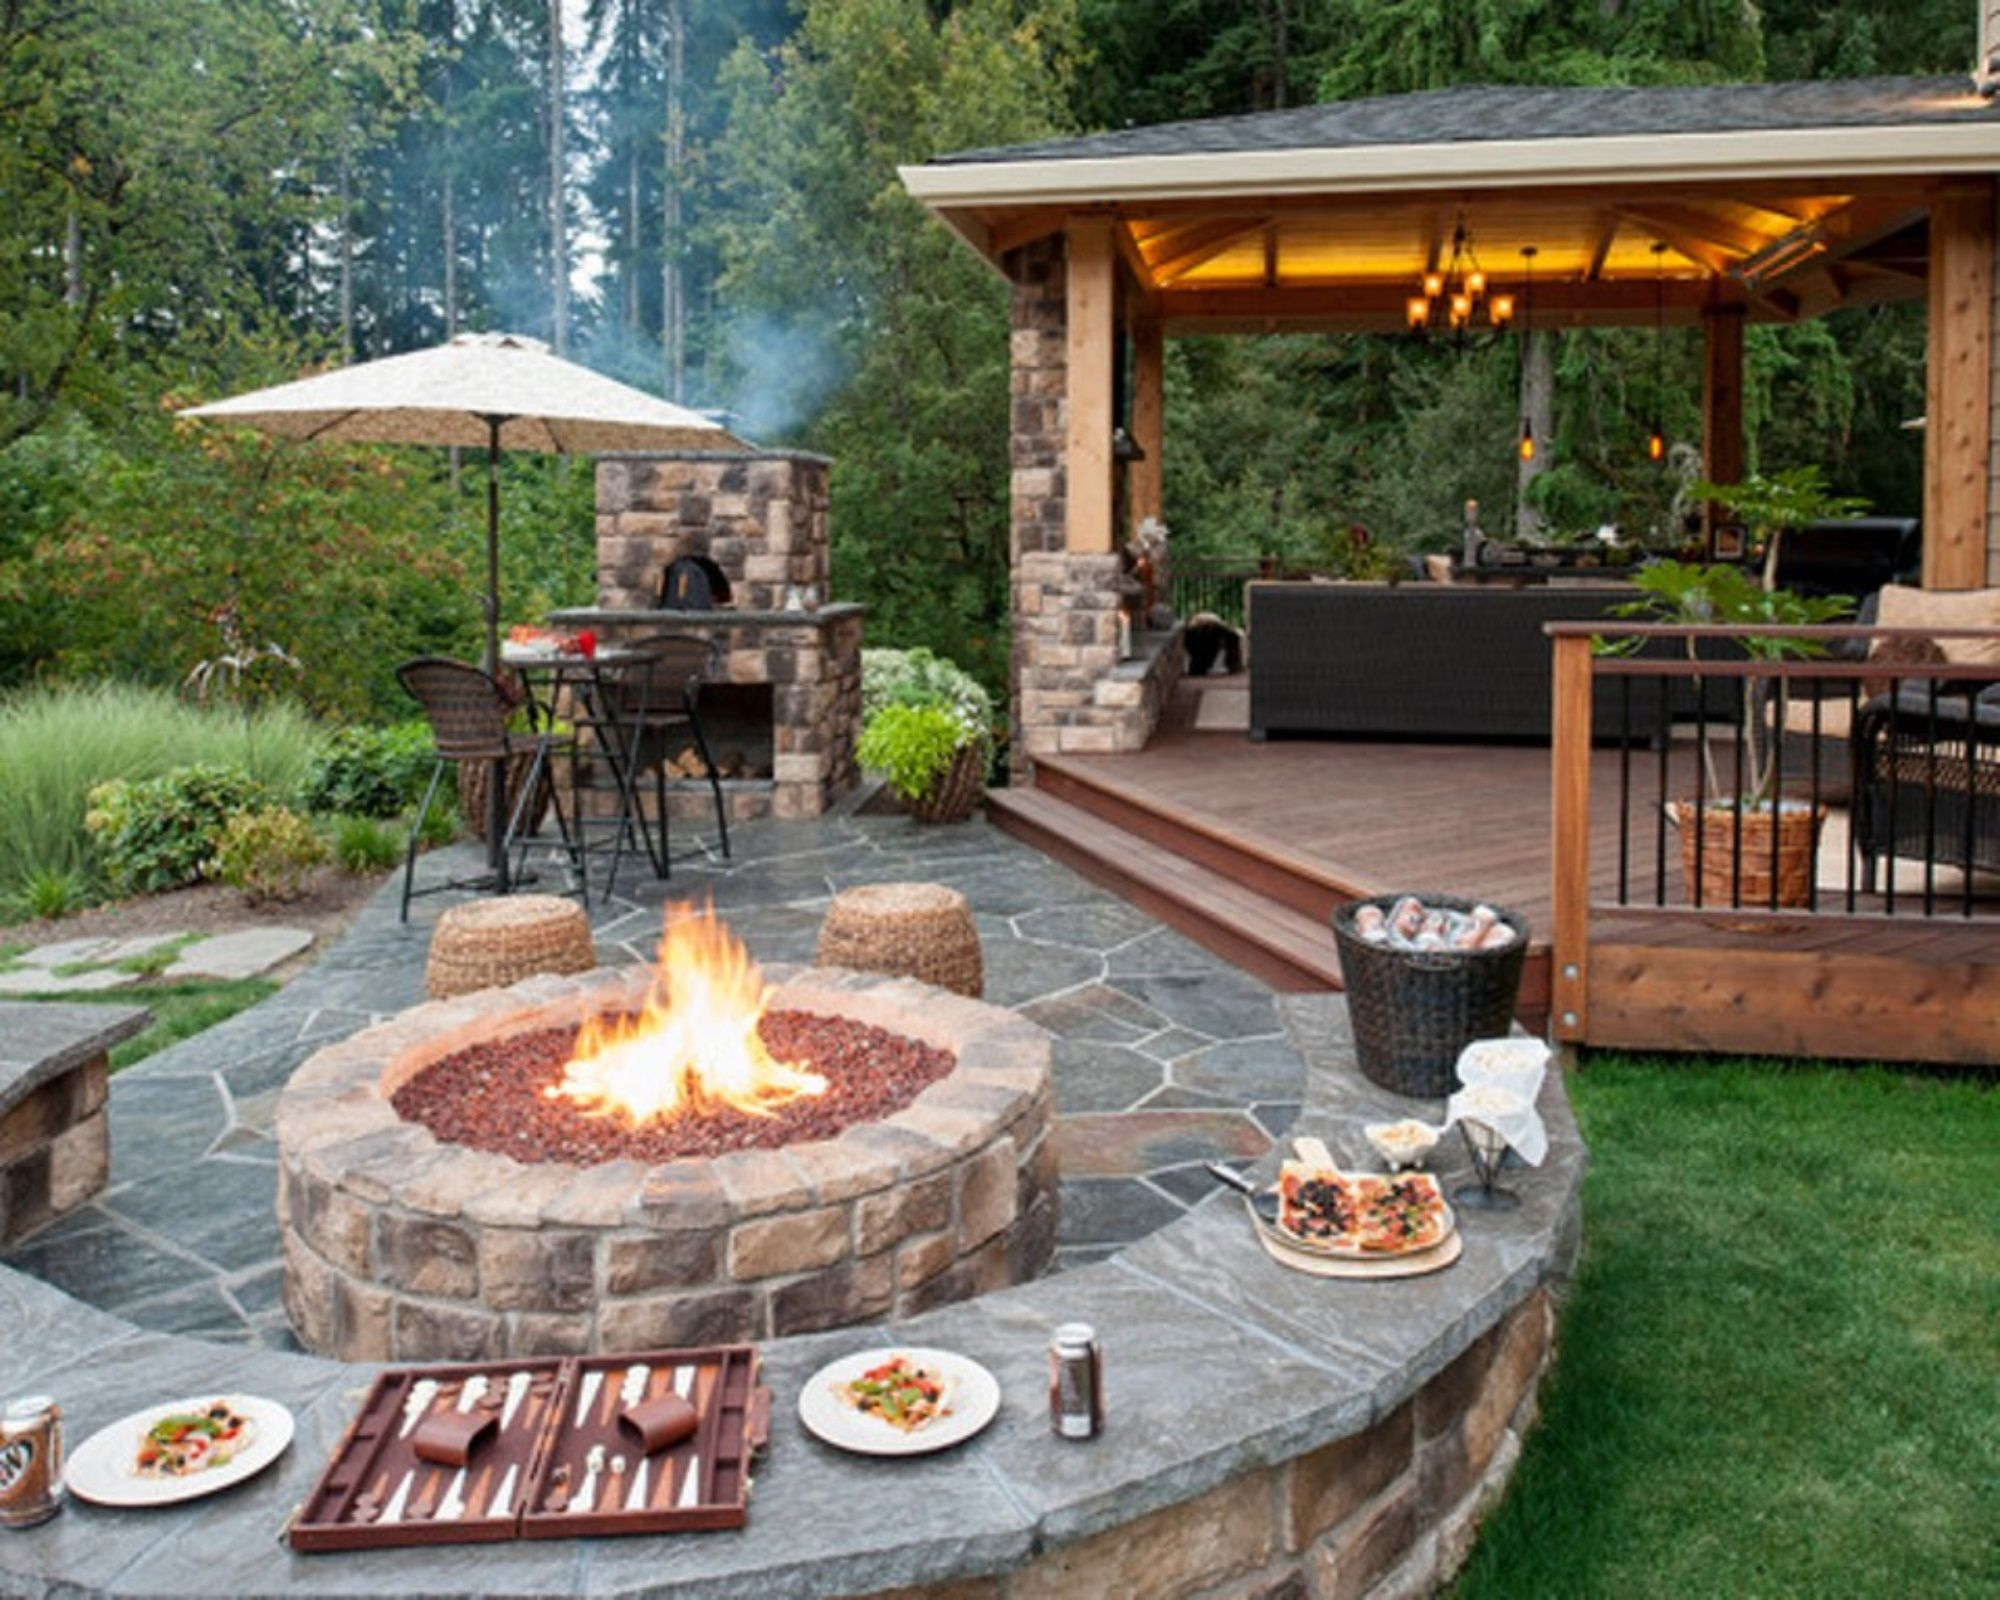 outdoor kitchen patio designs outdoor fire pit patio designs patio ... - Backyard Patio Deck Ideas